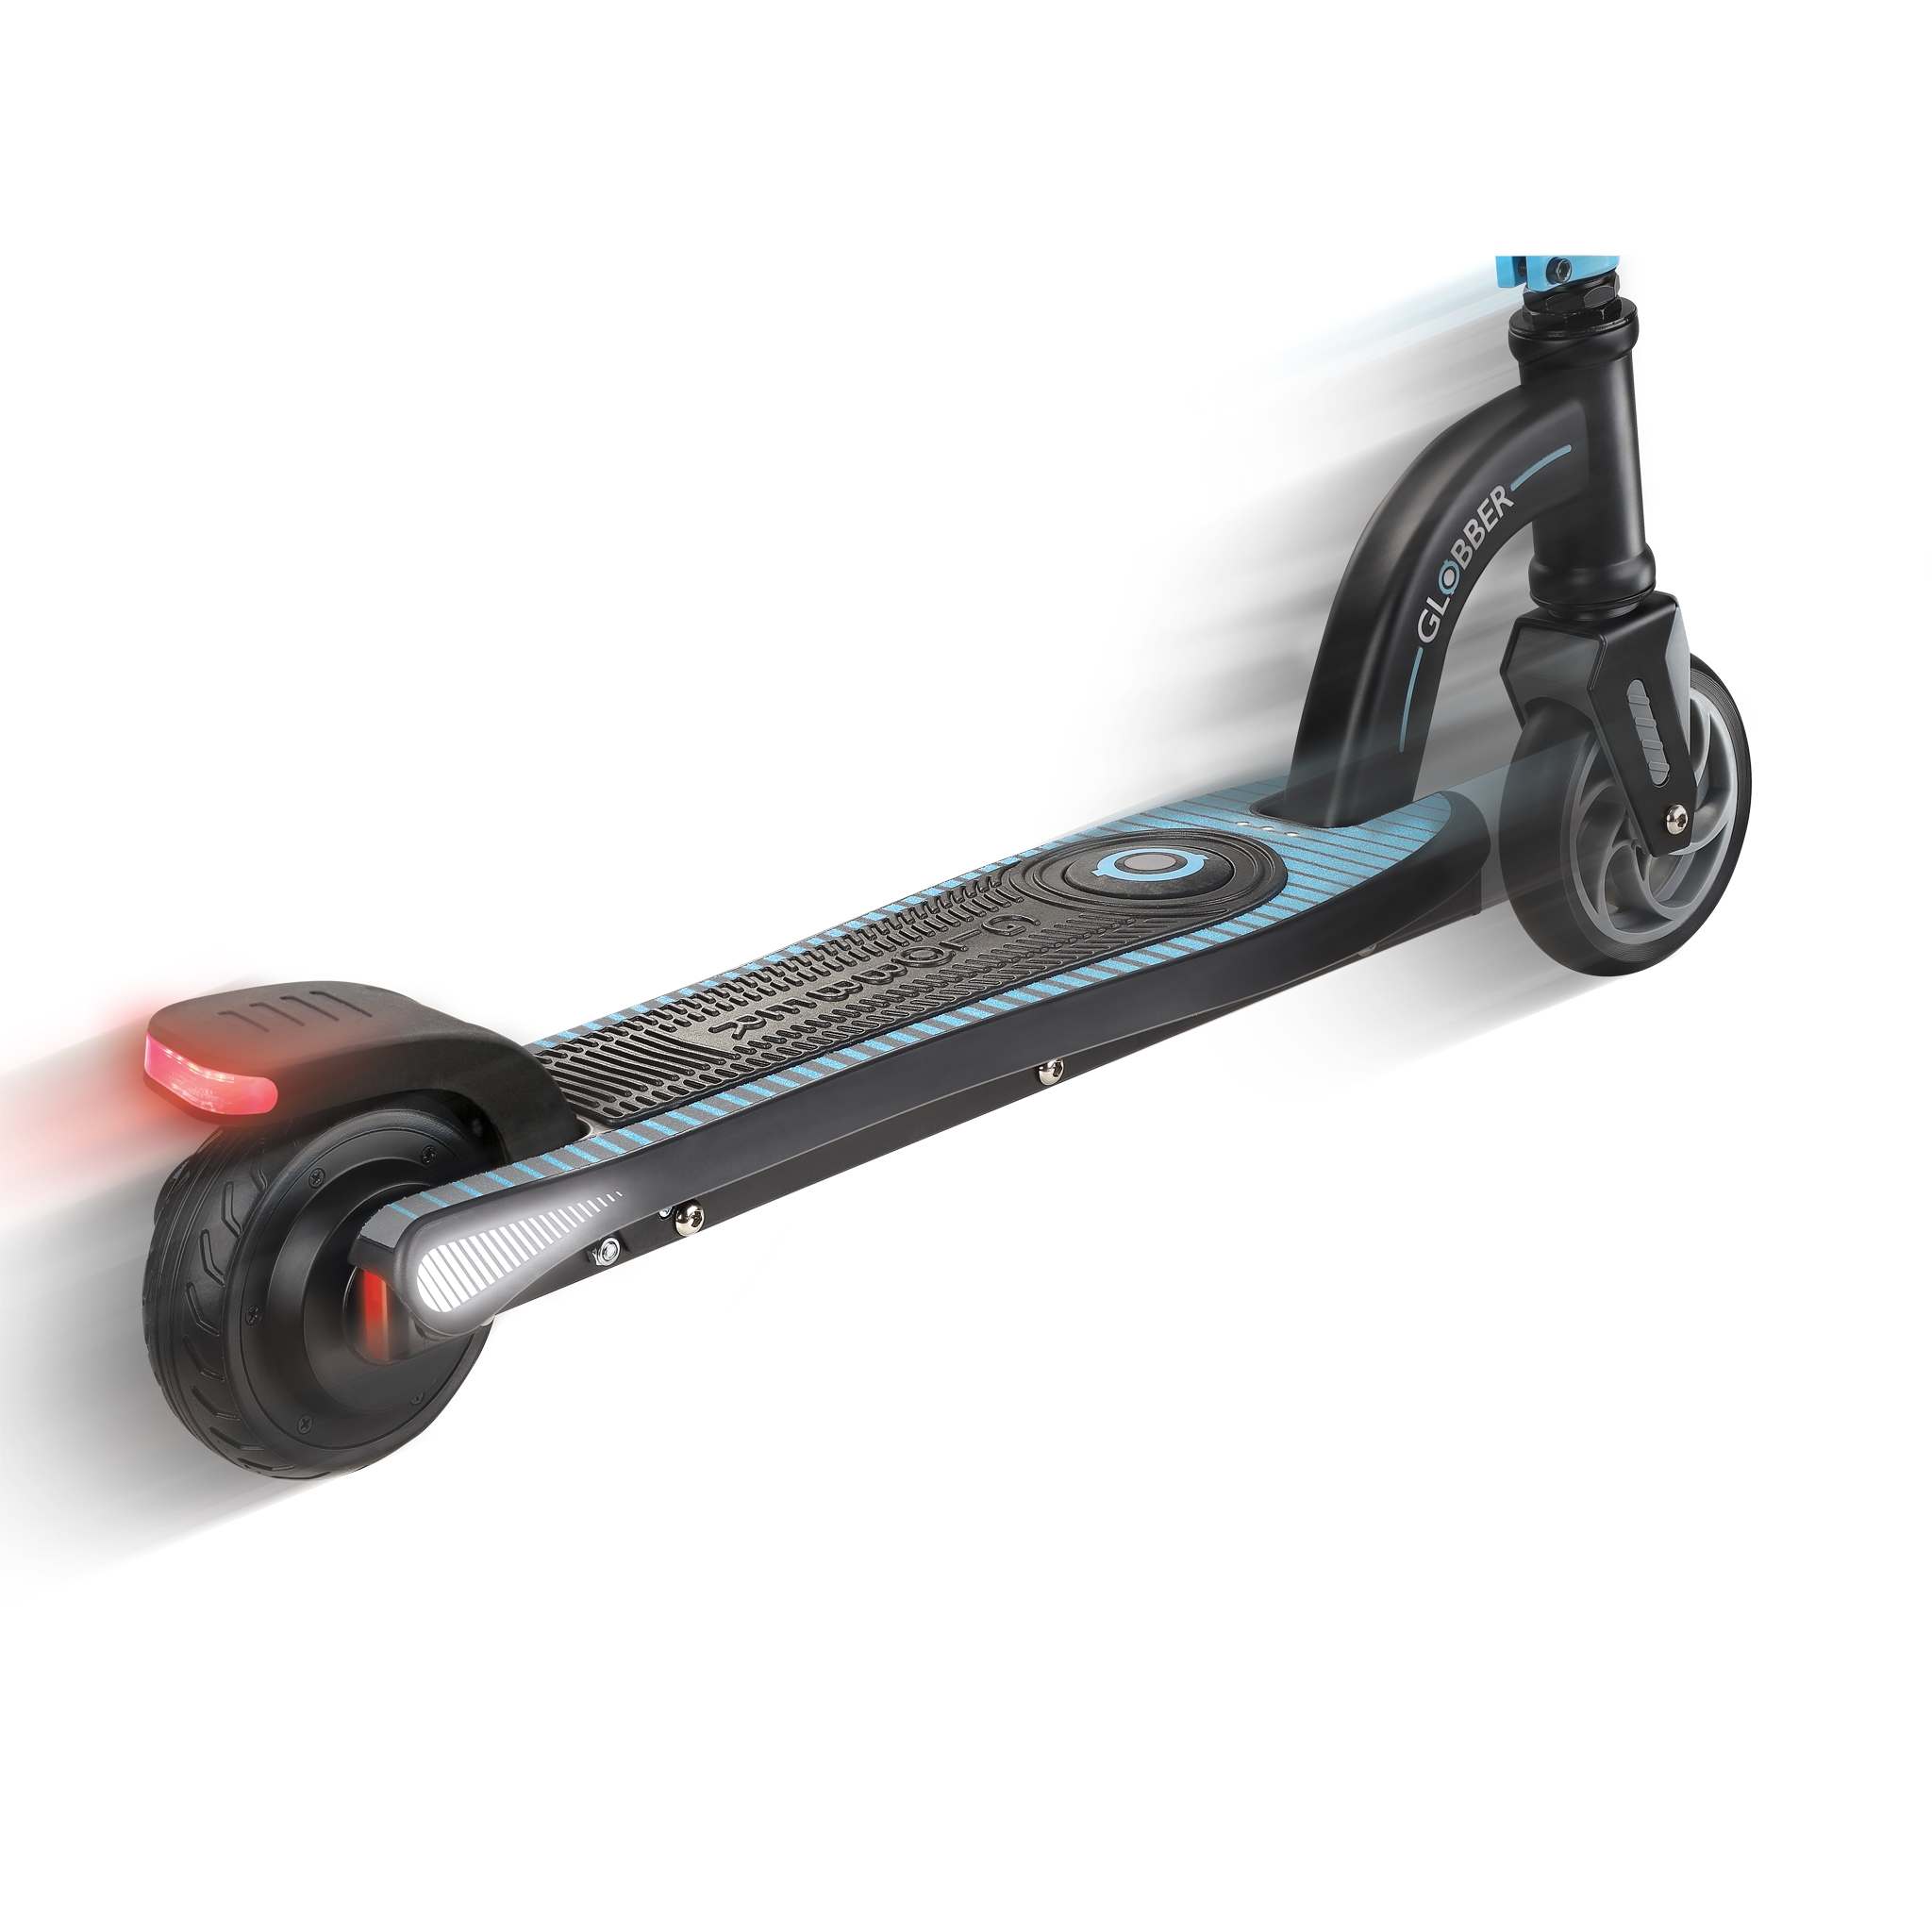 Globber-ONE-K-E-MOTION-10-electric-scooter-for-kids-aluminium-scooter-deck-with-accelerator-pressure-sensor 1